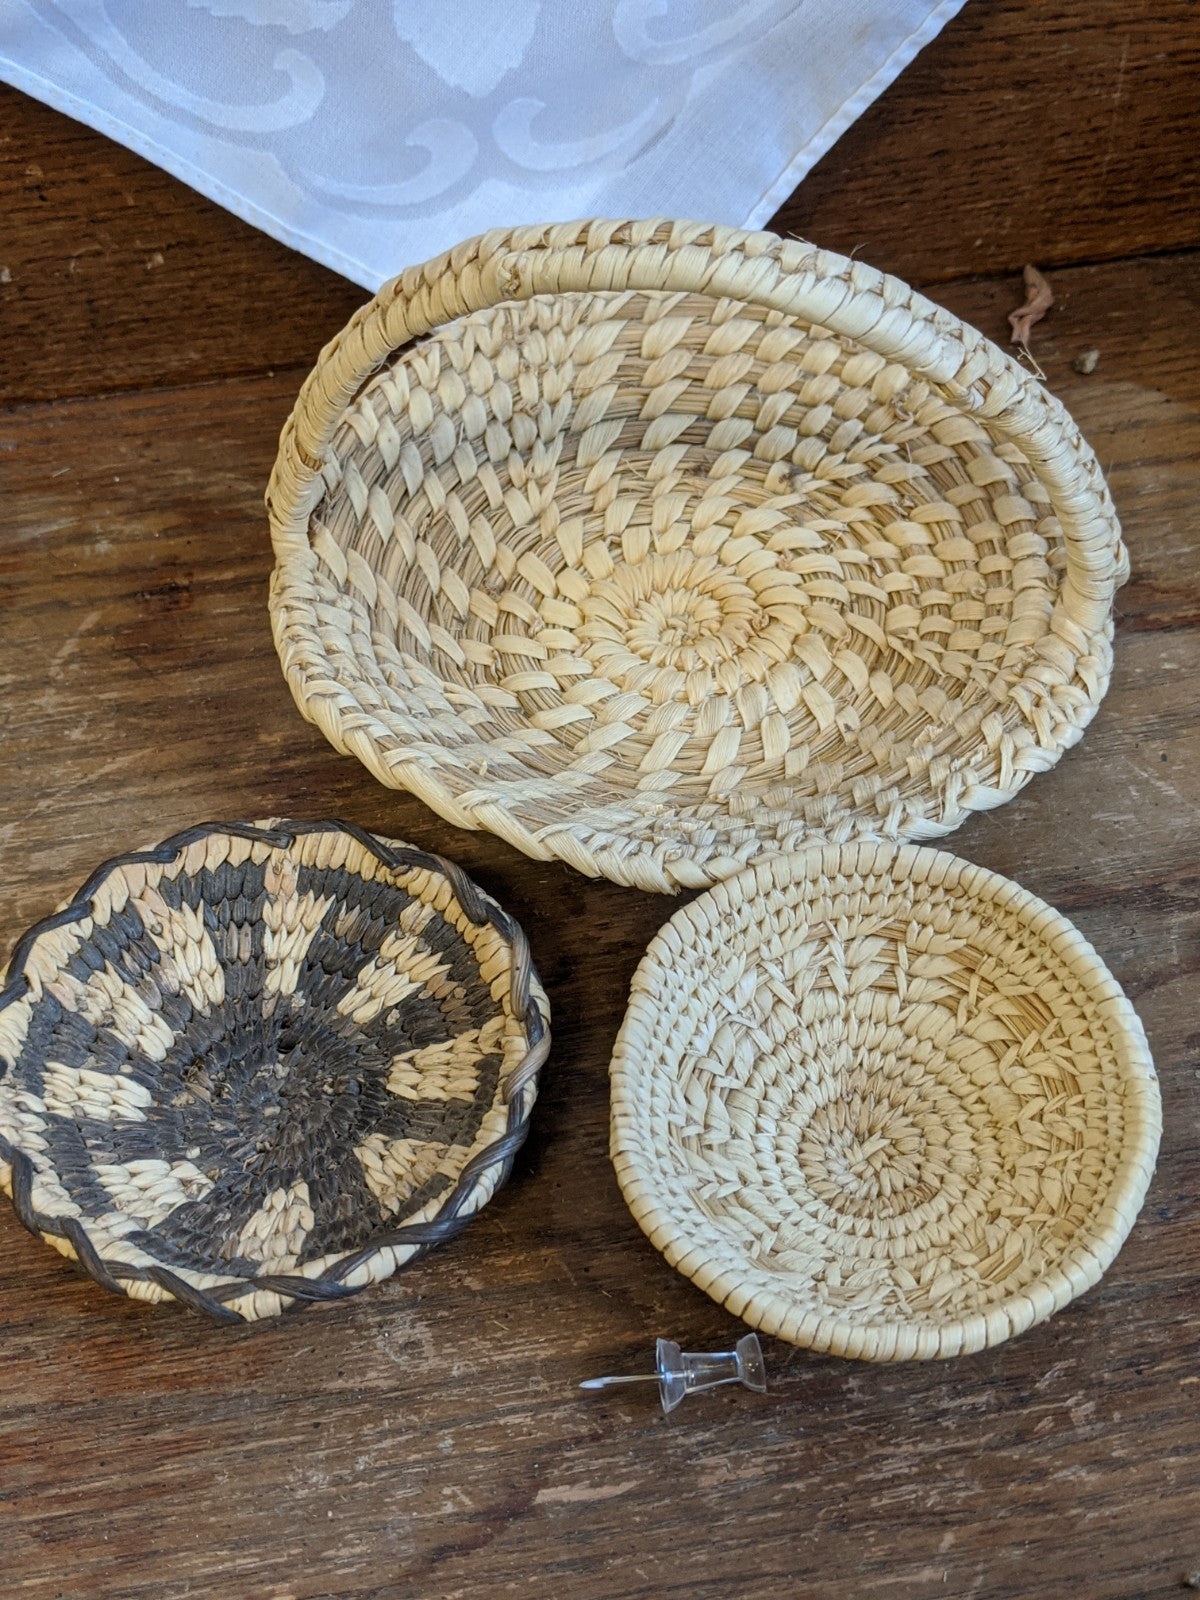 Native American grass-weave mini-baskets